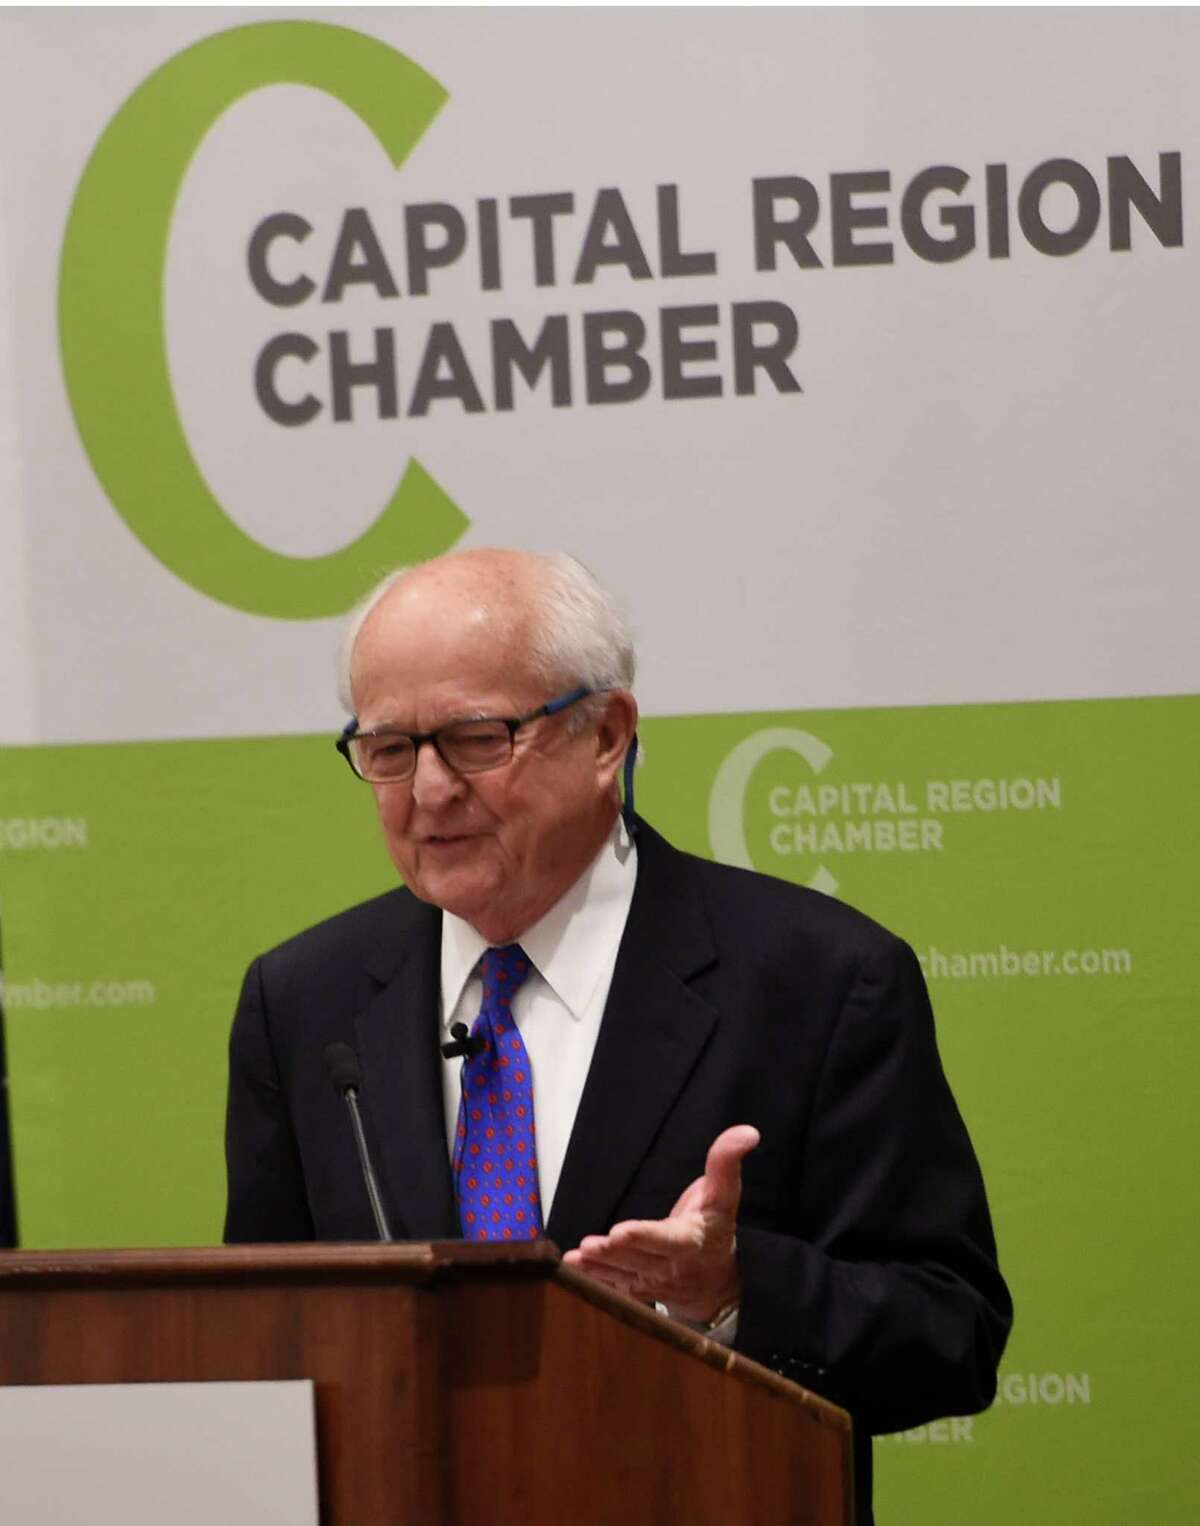 Hugh Johnson presents his 27th annual economic outlook for the coming year as he addresses the Capital Region Chamber of Commerce Friday morning at the Desmond Hotel Jan. 15, 2015 in Colonie, N.Y. (Skip Dickstein/Times Union)